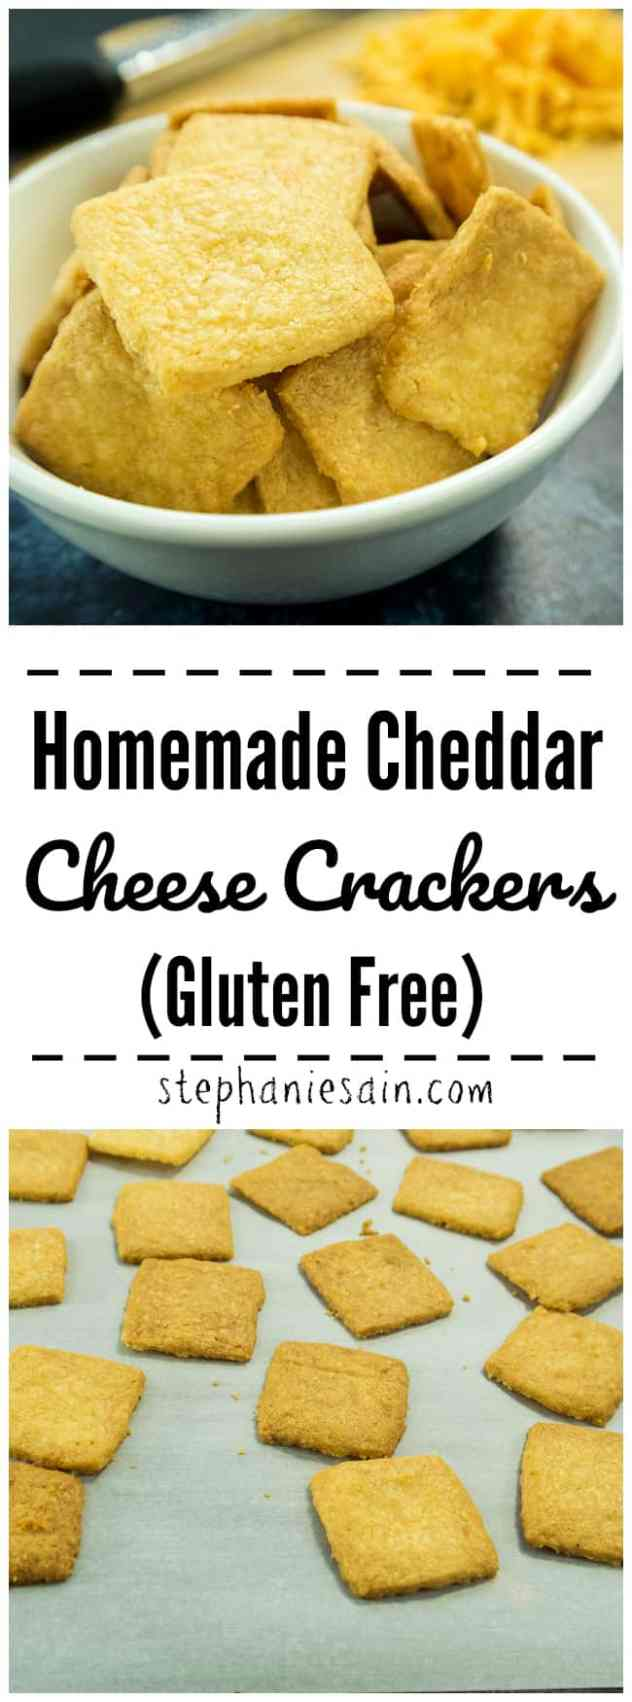 These Homemade Cheddar Cheese Crackers require only 5 ingredients & 10-12 minutes to bake. For a healthier, lower carb snack cracker perfect for any occasion. Gluten Free, Low carb.